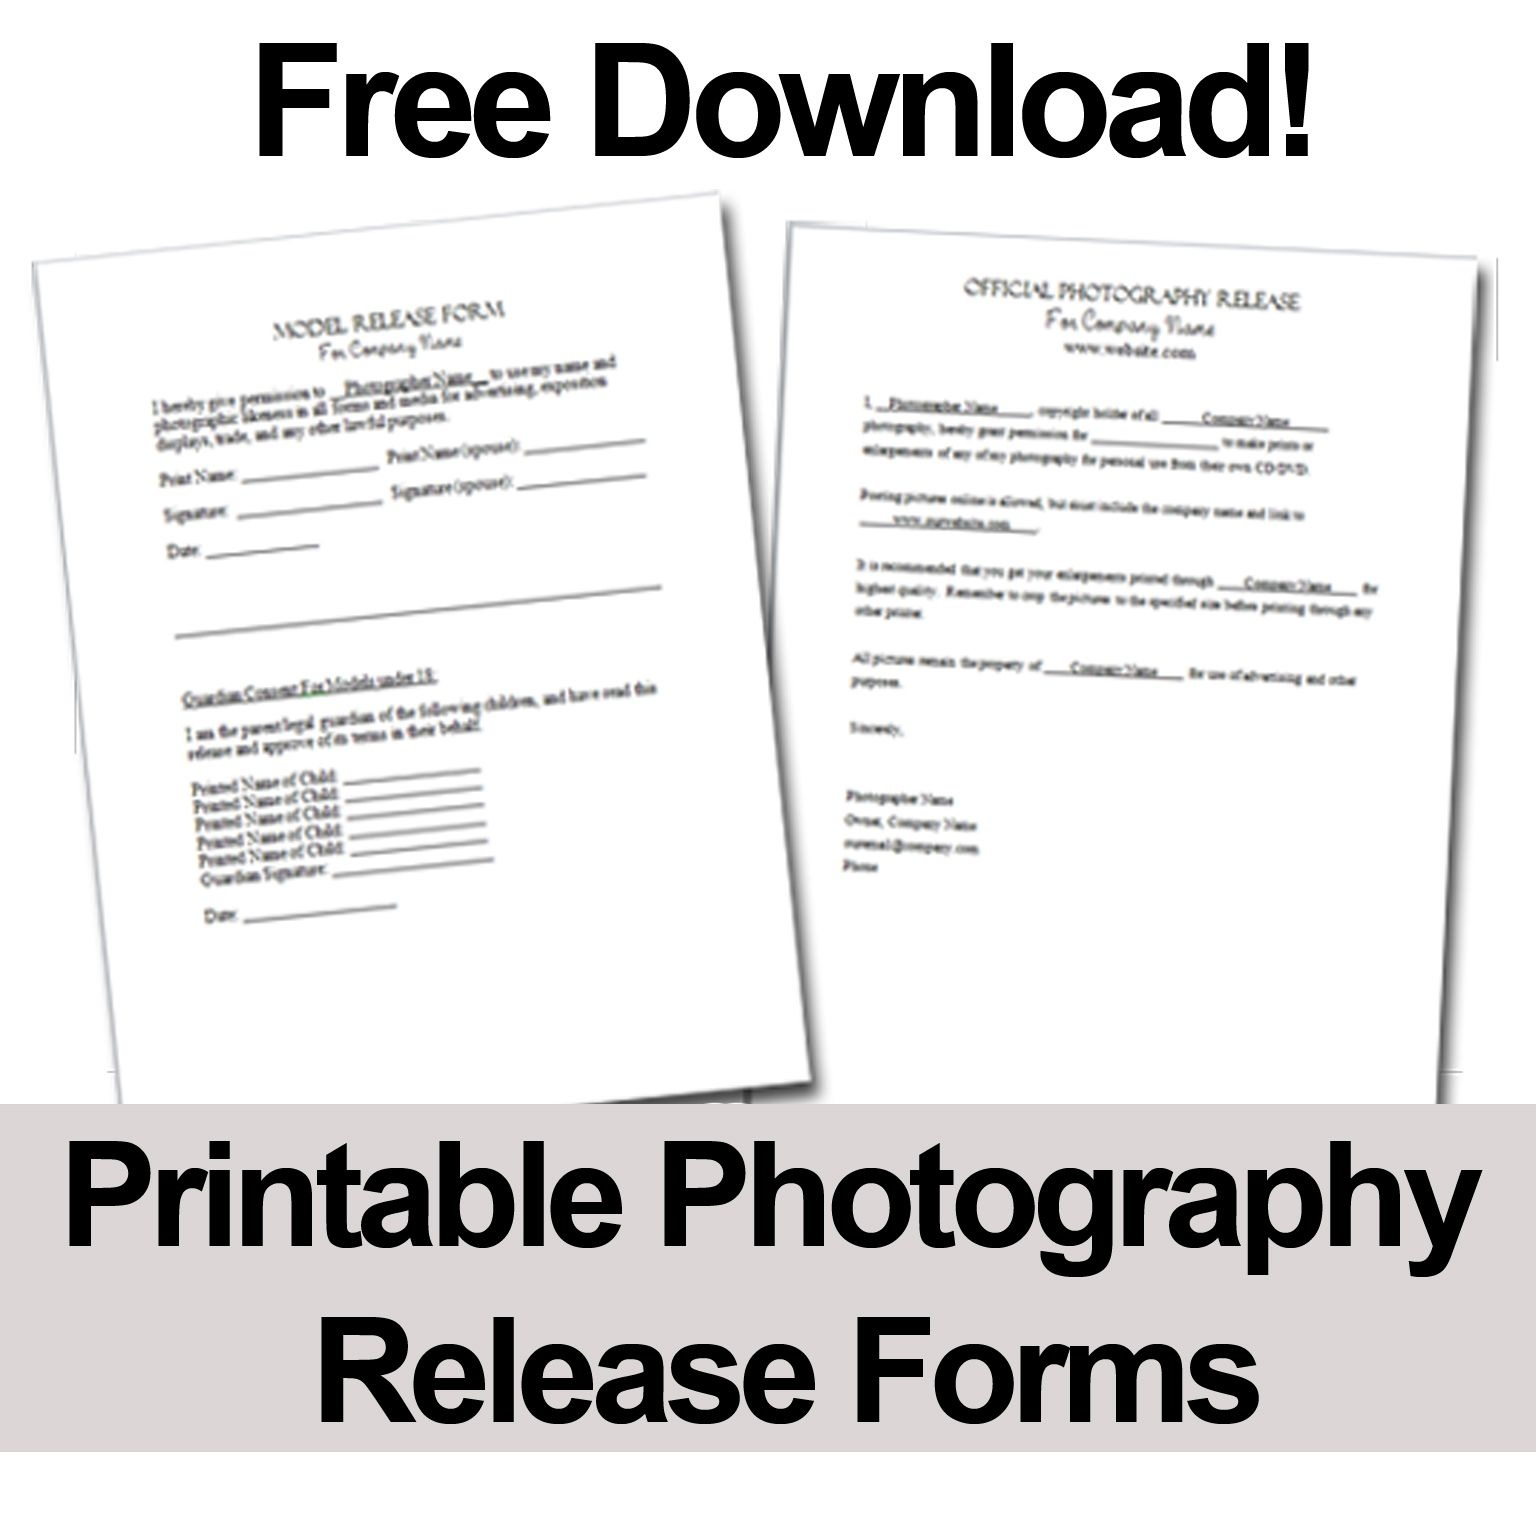 Print These Free Photography Release Forms To Give Your Clients - Free Printable Print Release Form